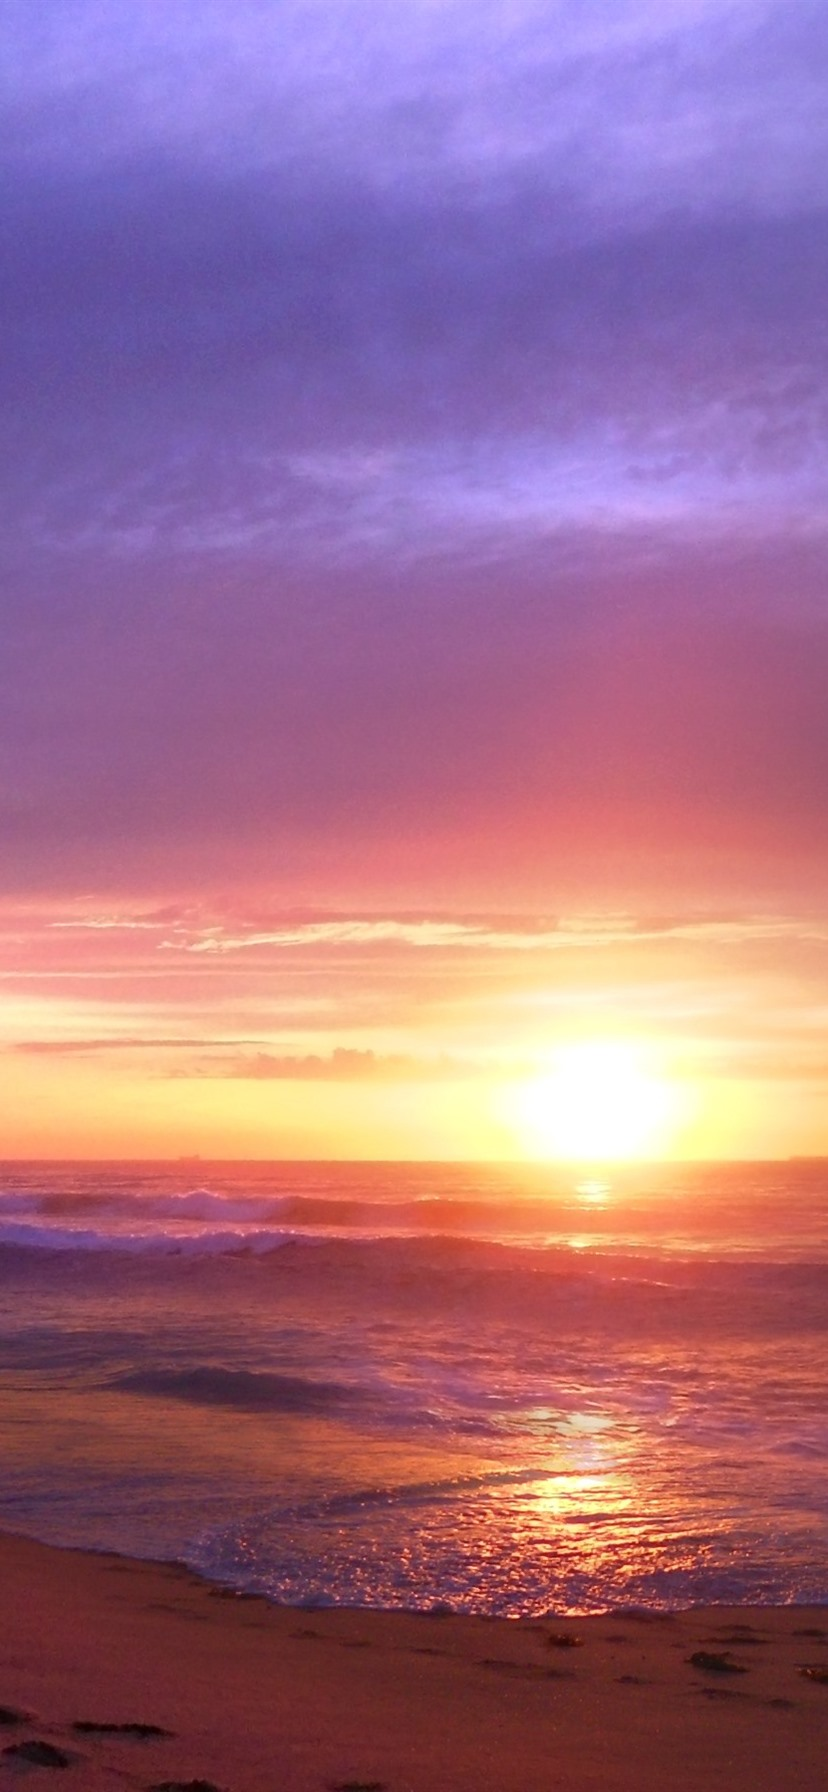 Sunset Sea Waves Beach Nature Landscape 828x1792 Iphone 11 Xr Wallpaper Background Picture Image